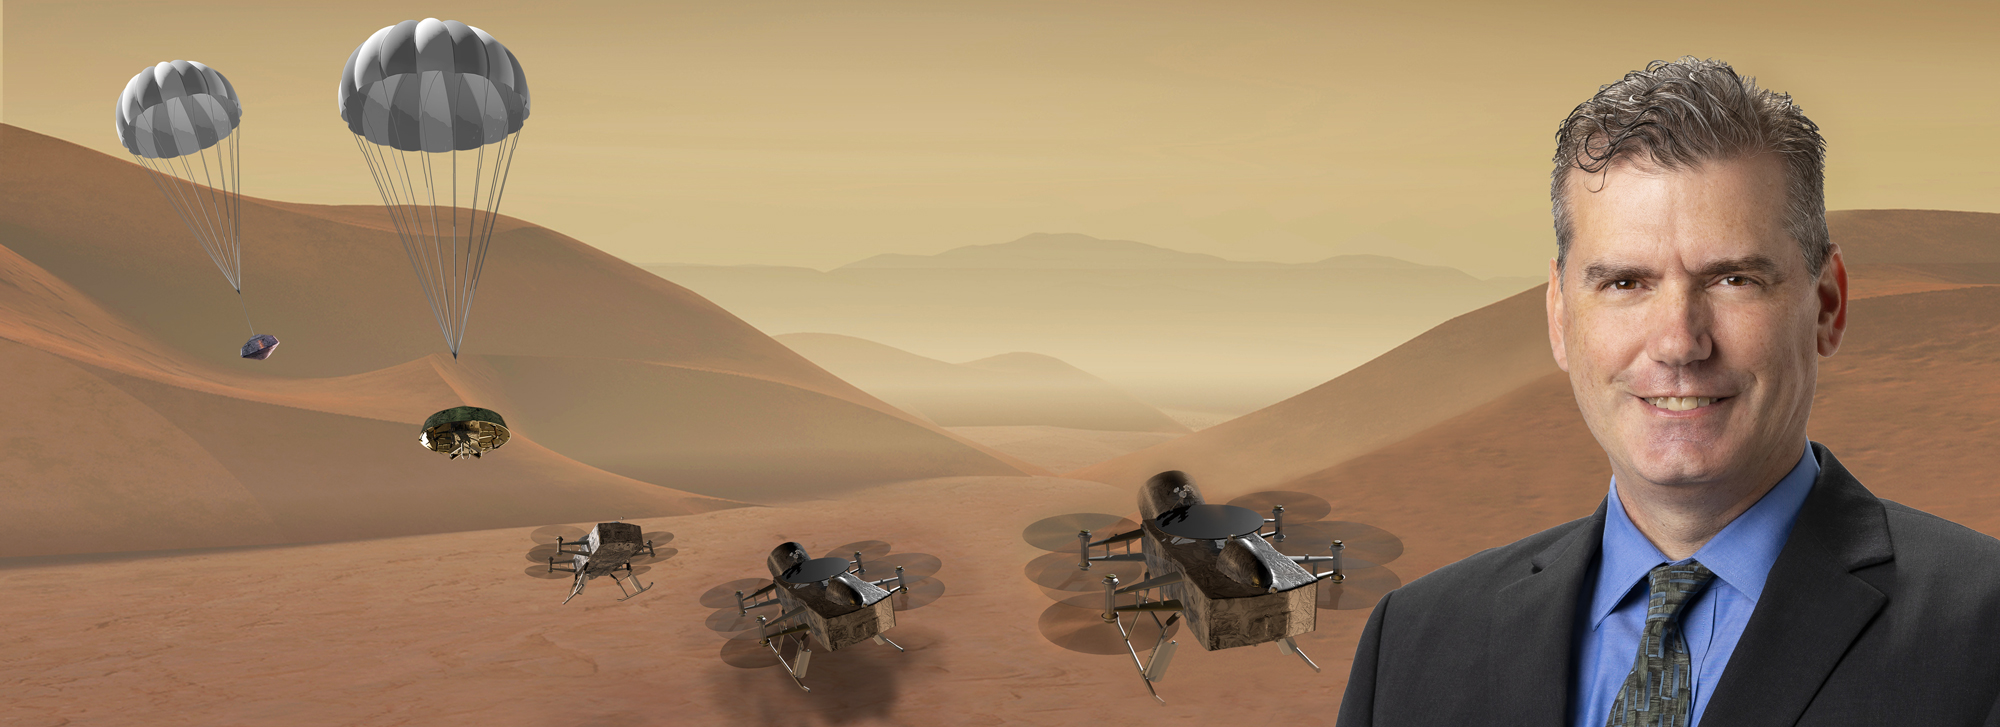 Webinar: Robotic Exploration of Titan with Dragonfly - An Overview of the Lander Mobility System